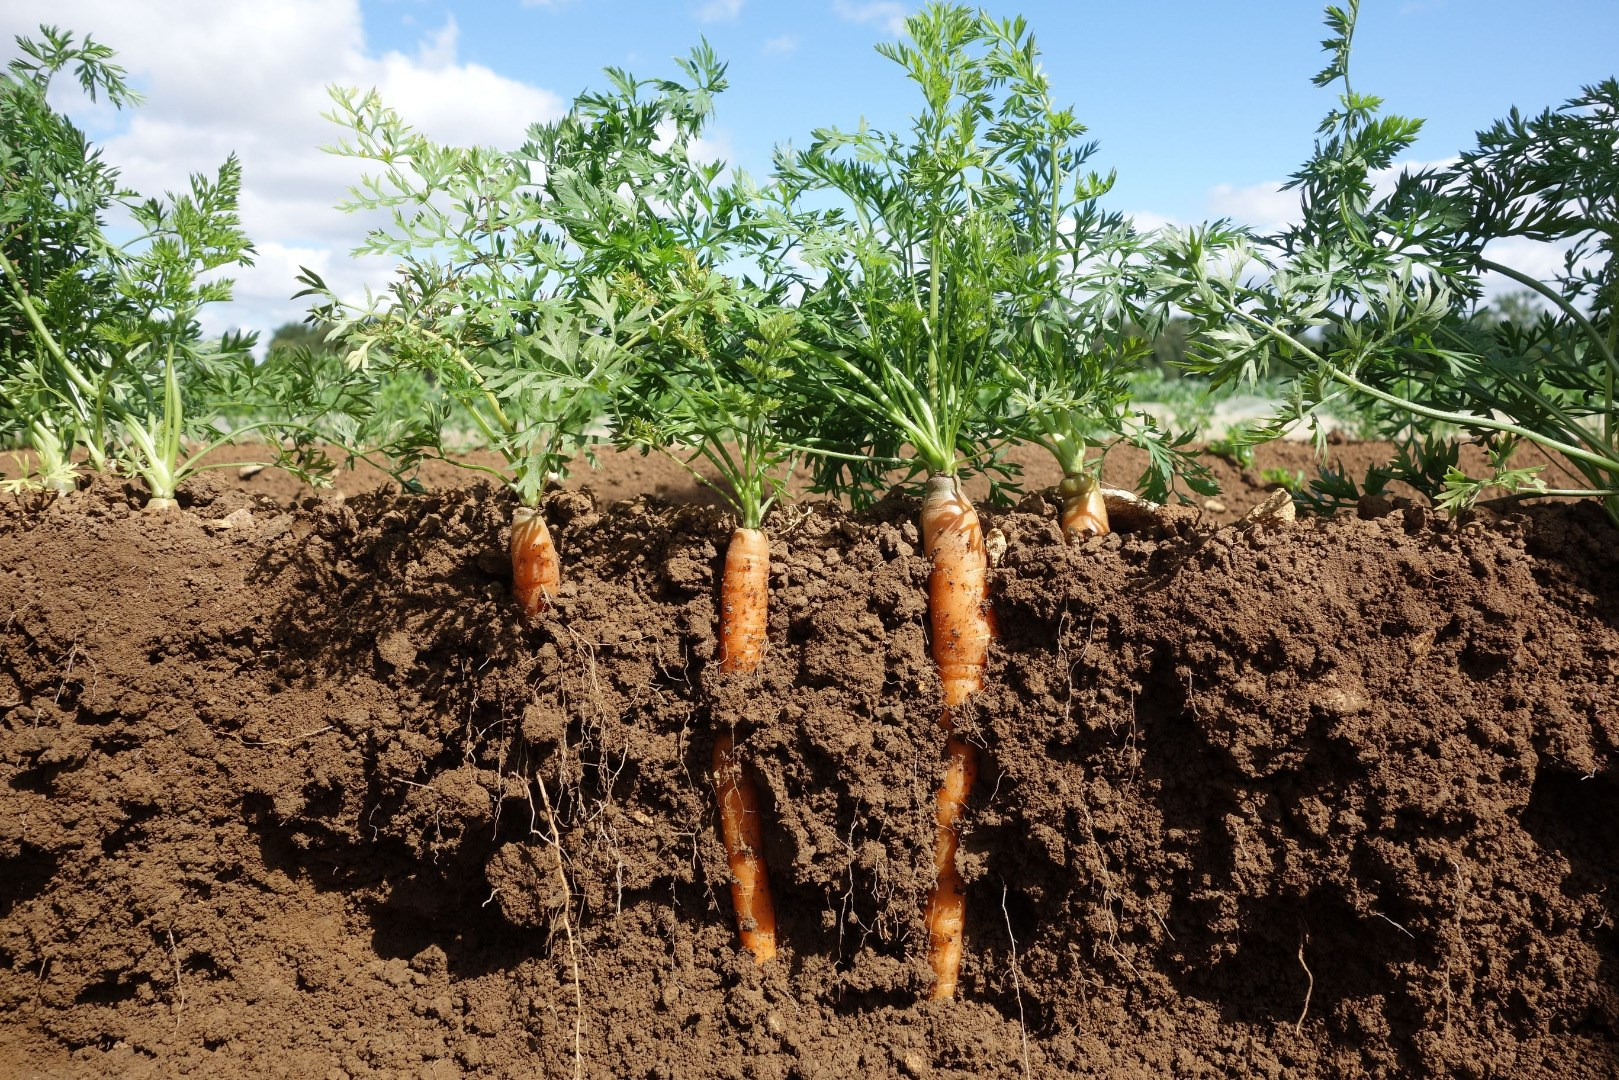 Drop In Organic Farmland Despite Growing Market